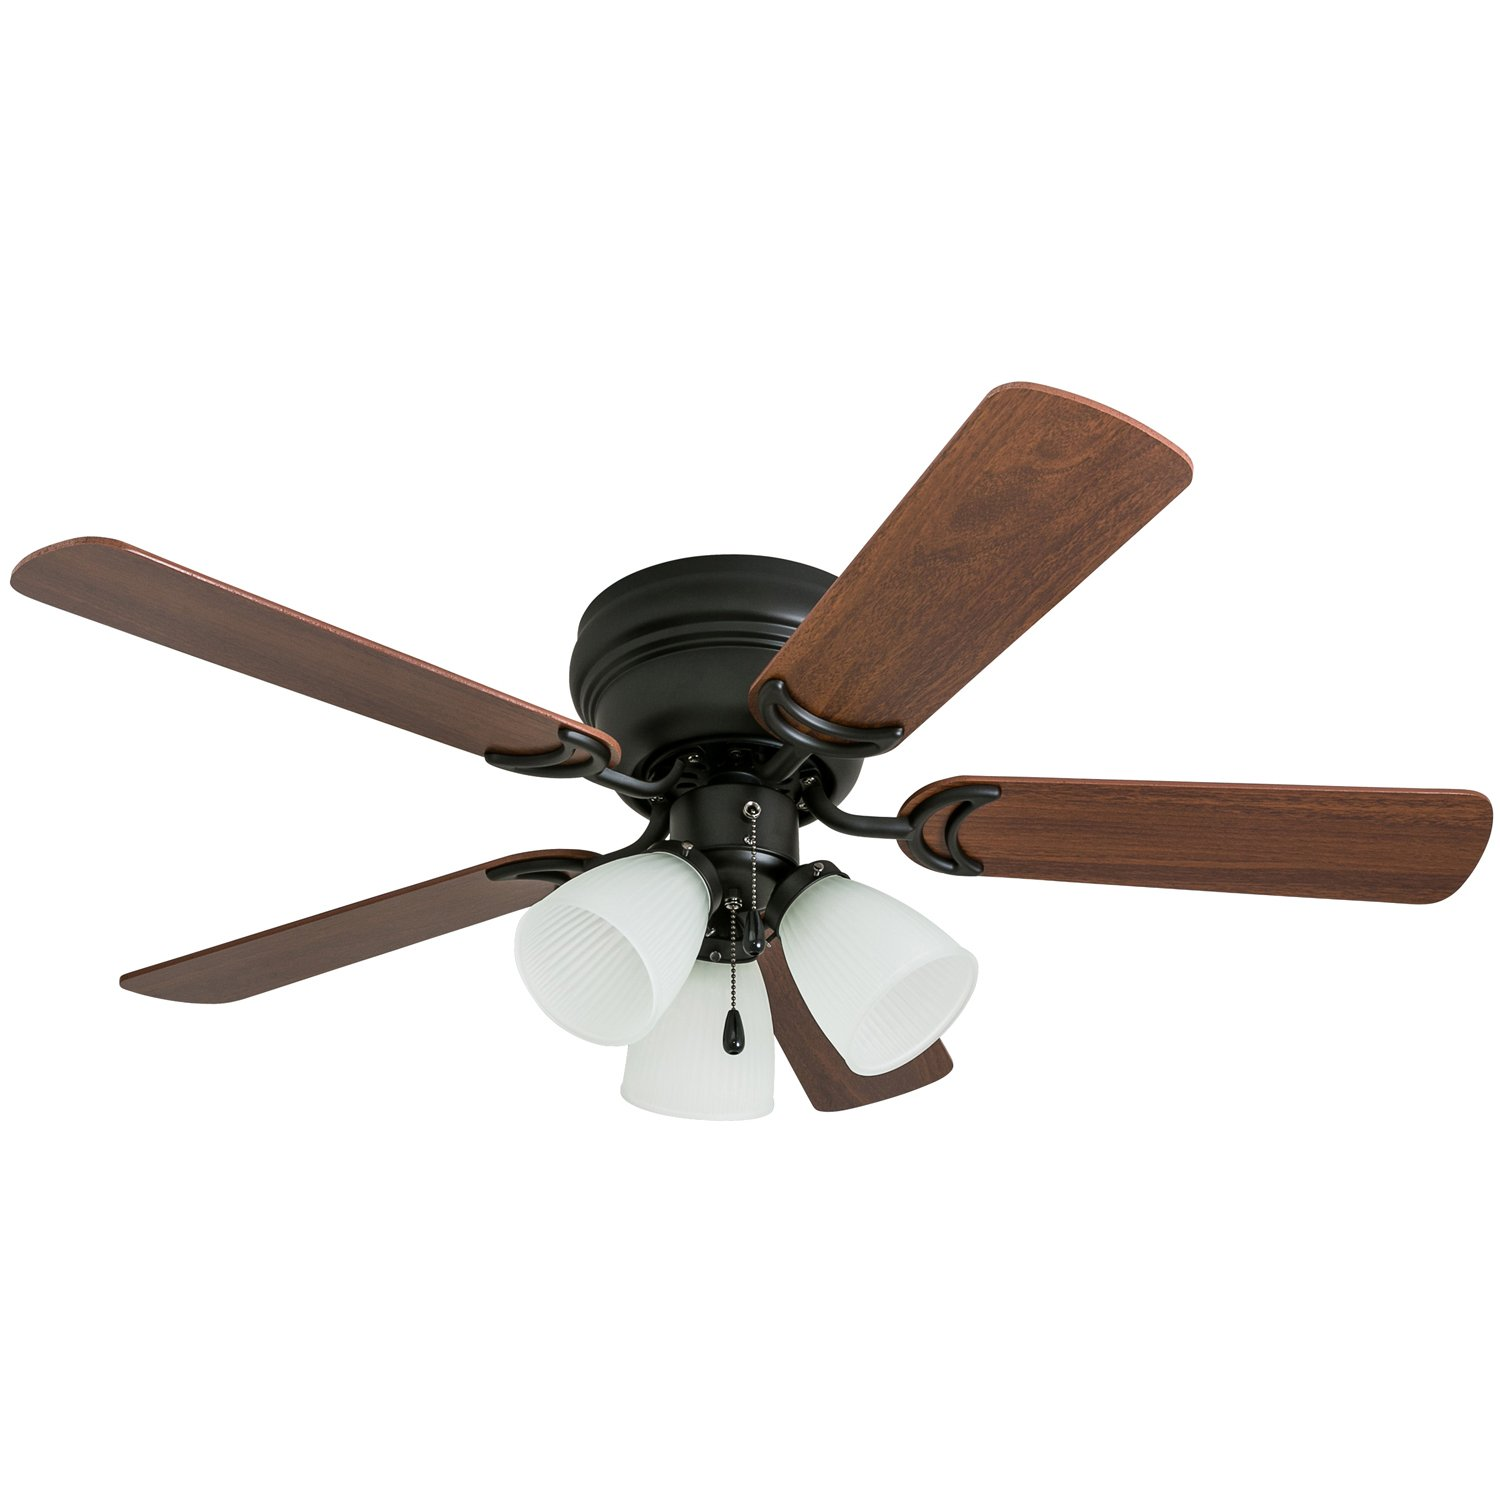 Prominence Home 50864 Whitley Hugger Ceiling Fan with 3 Light Fixture, 42'' LED Indoor Low-Profile/Flush-mount, Warm Bronze